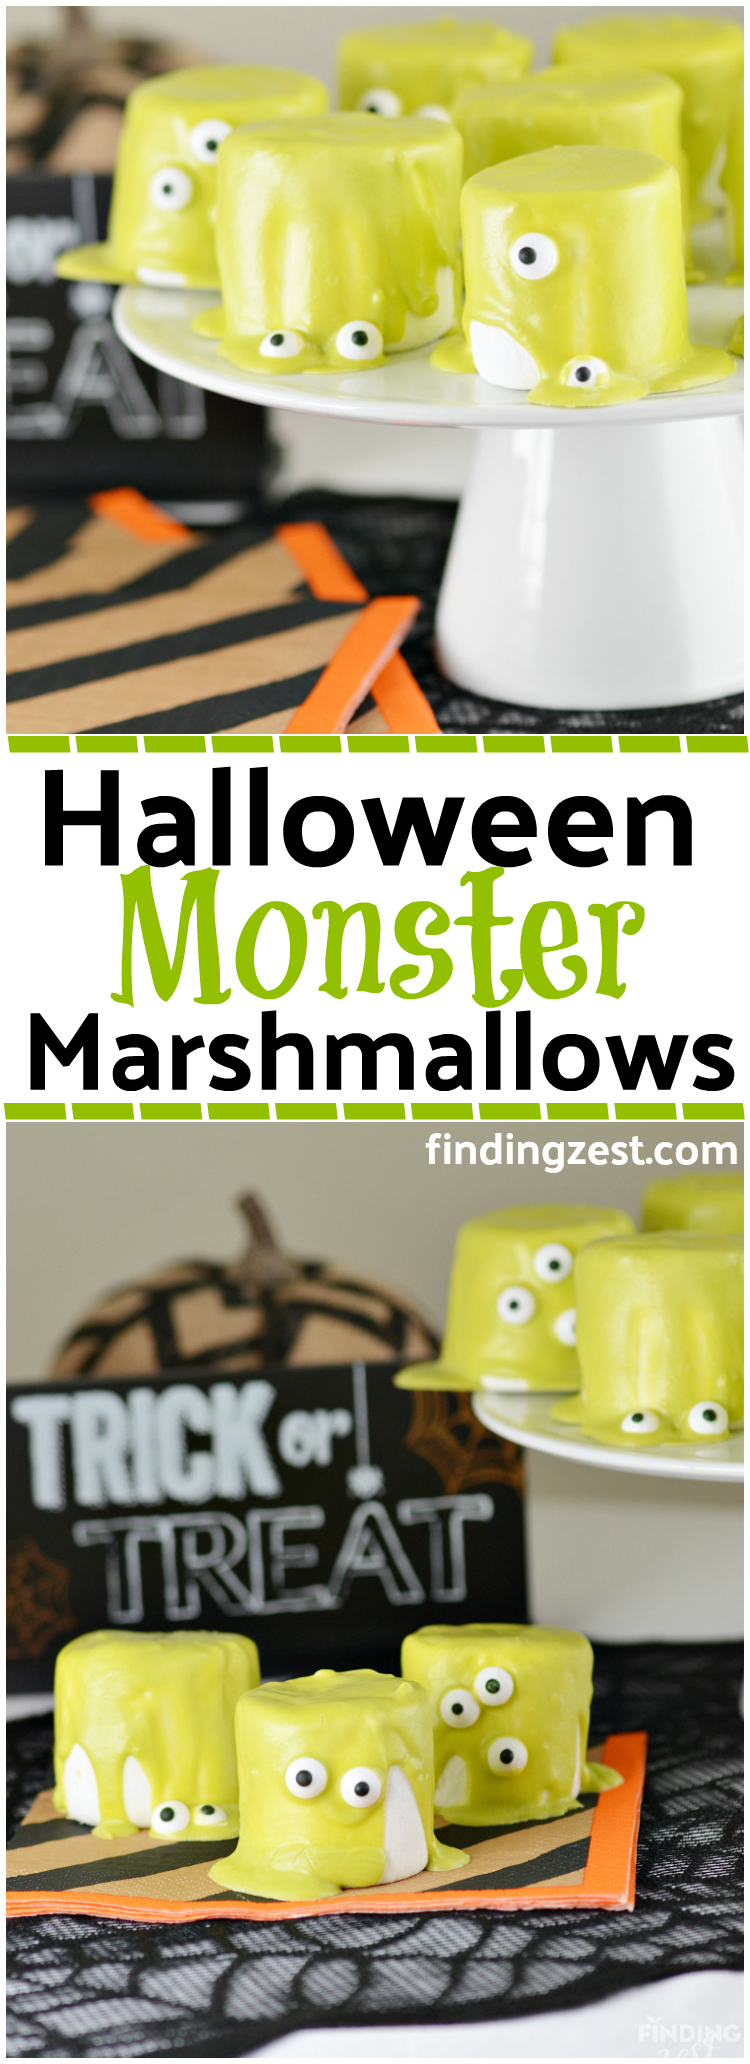 These slime Halloween Monster Marshmallows are a fun no-bake Halloween treat. These are so easy to make and kids will love the eyes that slide down!